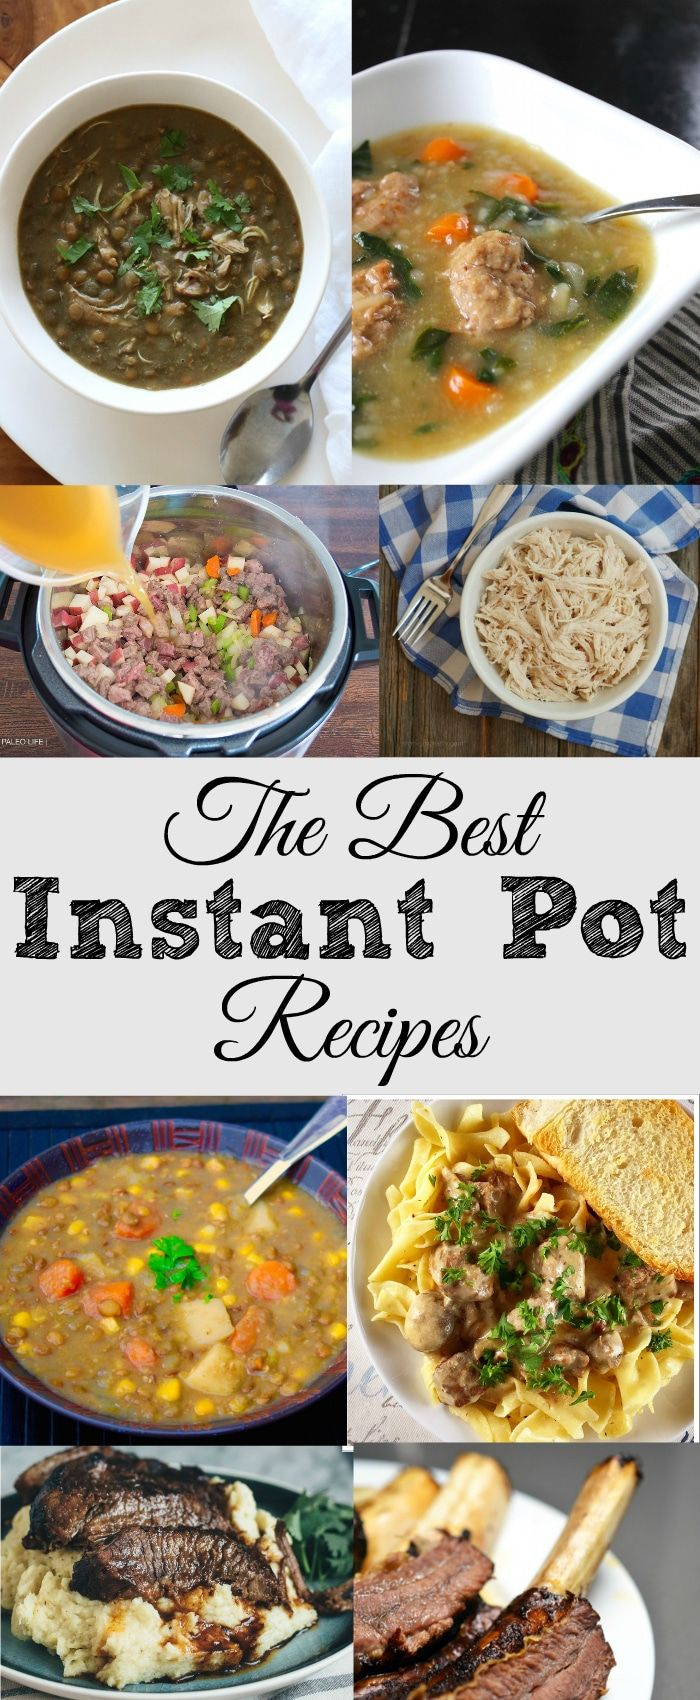 The best instant pot recipes around that are easy to make in your pressure cooker. From soup to dinner ideas and more.